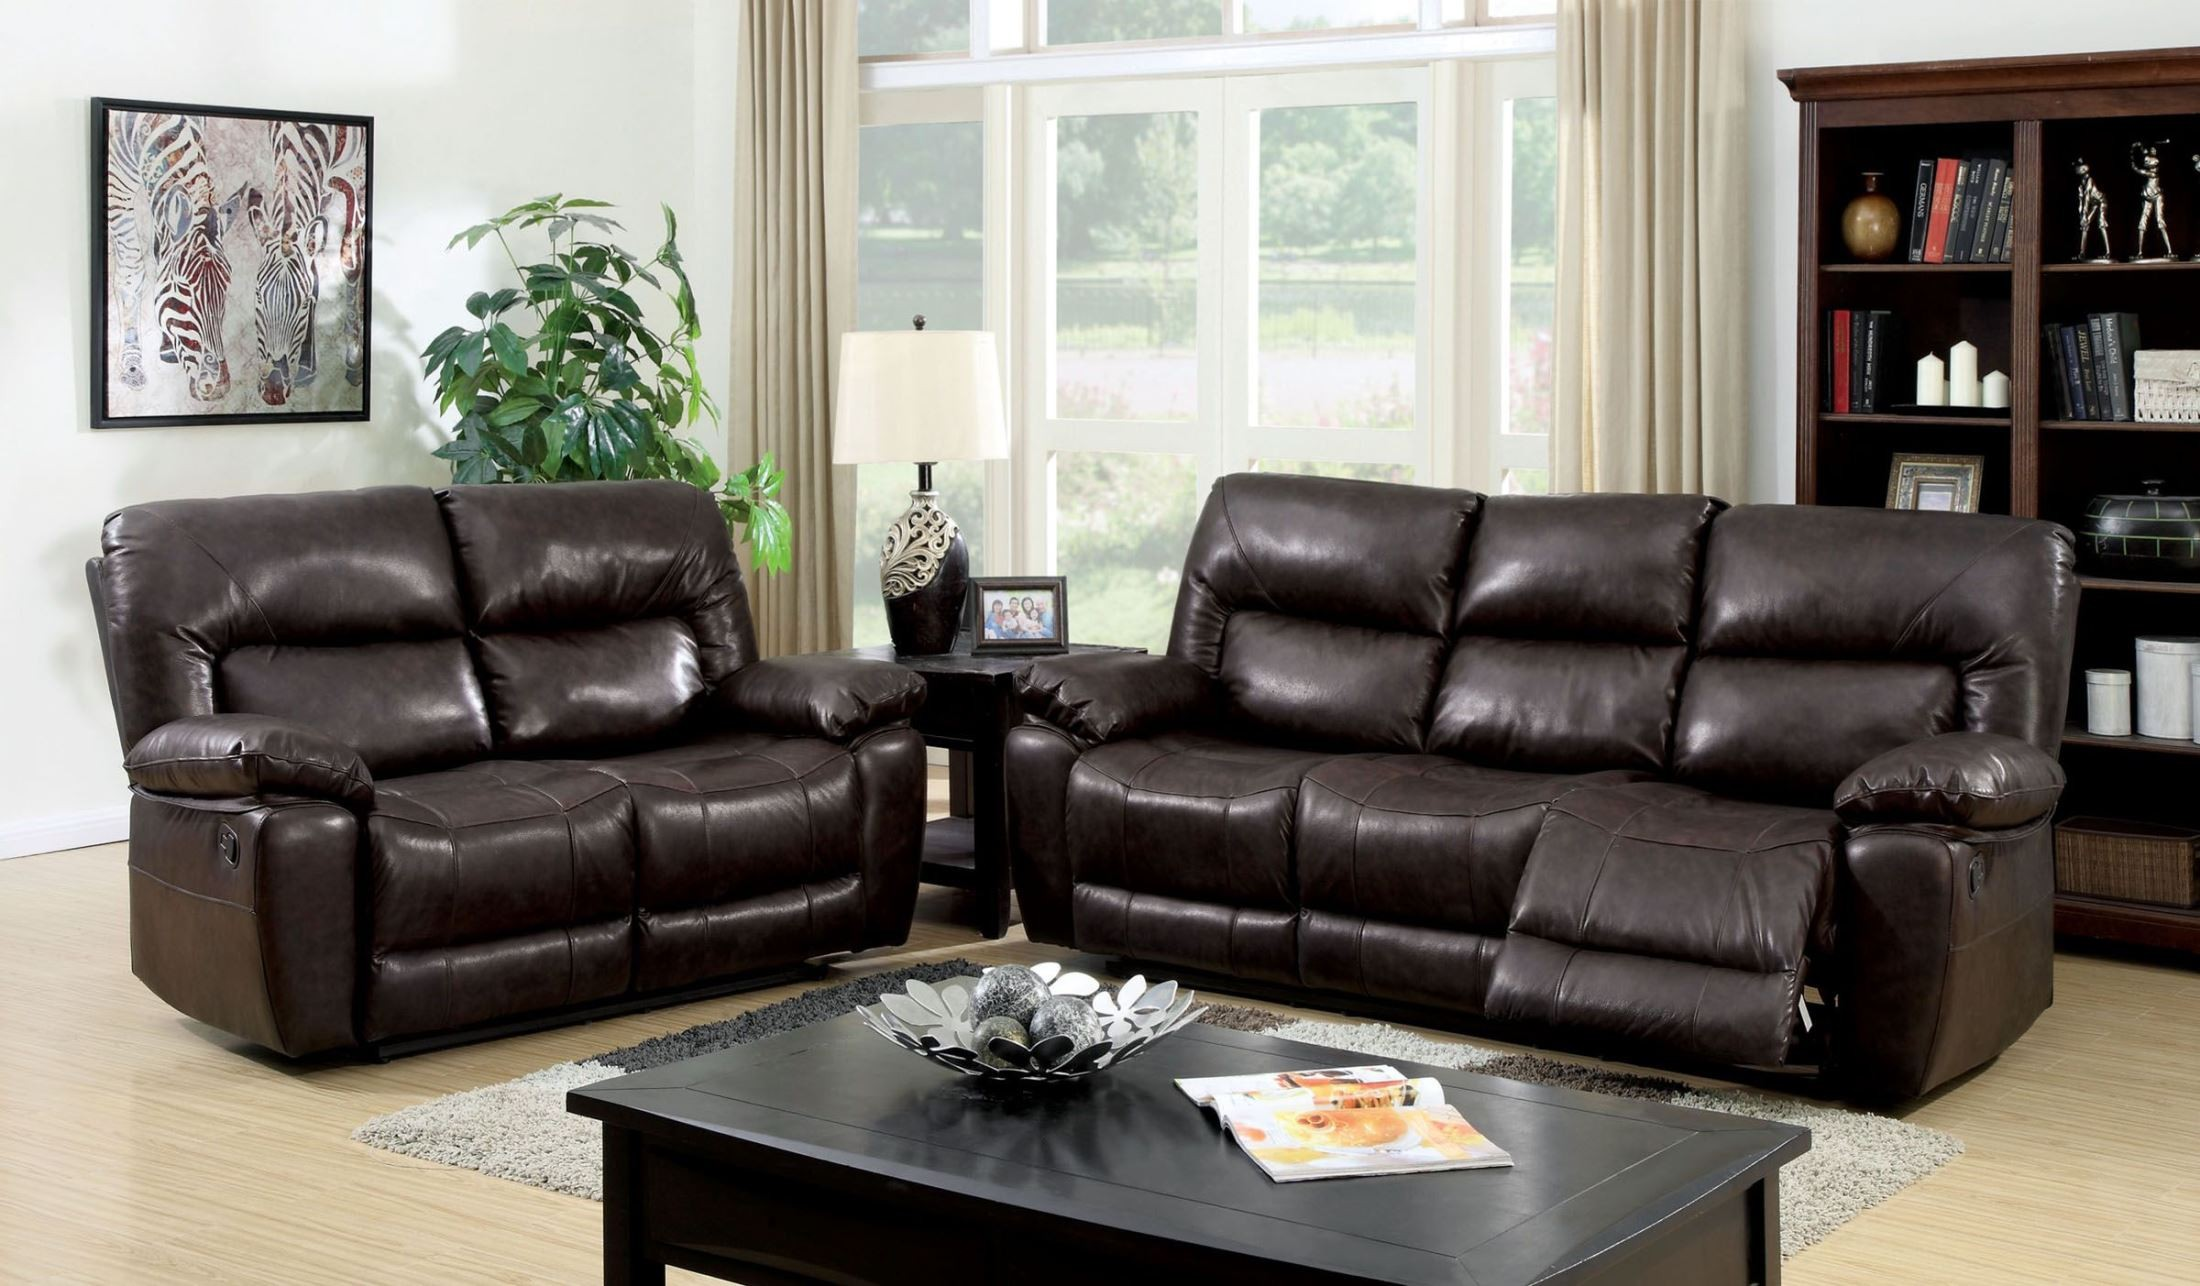 stallion top grain leather match reclining living room set from furniture of america cm6319 sf. Black Bedroom Furniture Sets. Home Design Ideas